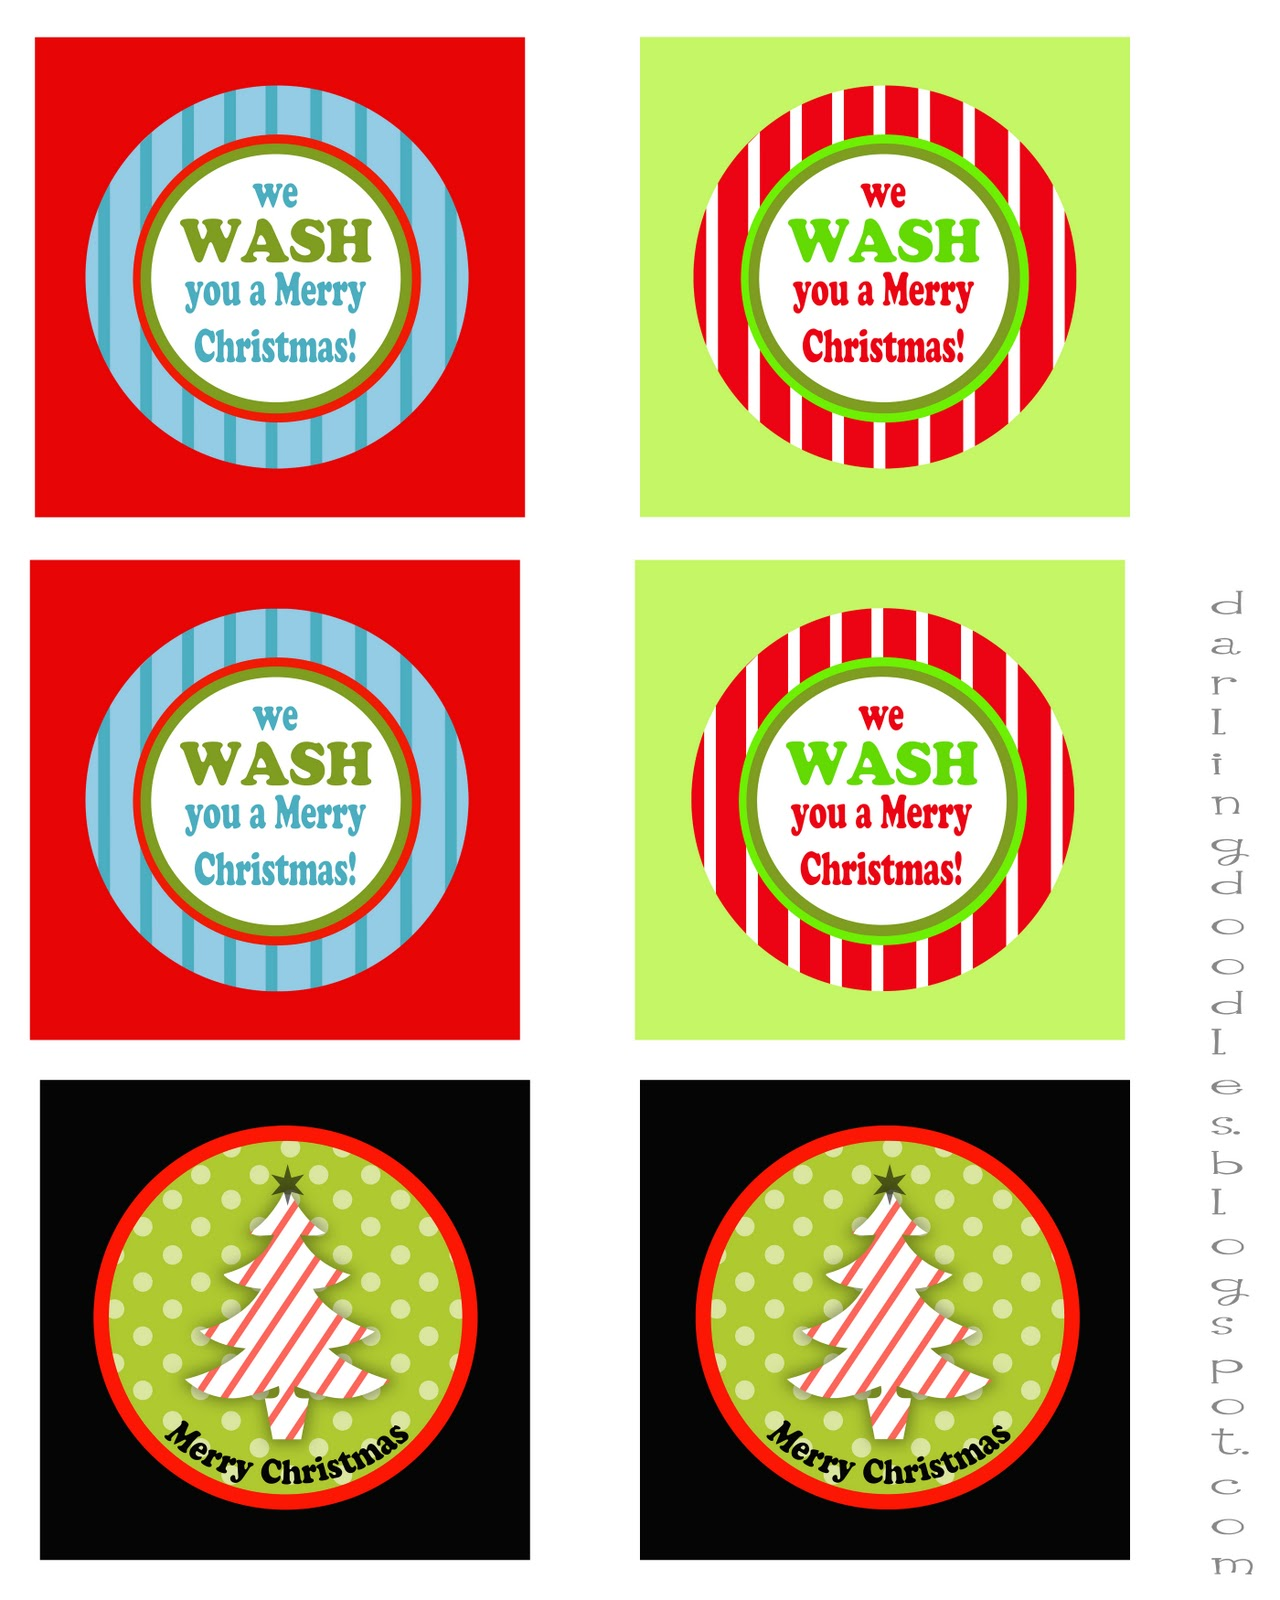 12 days of gift mas gift 1 darling doodles - 12 Days Of Christmas For Neighbors